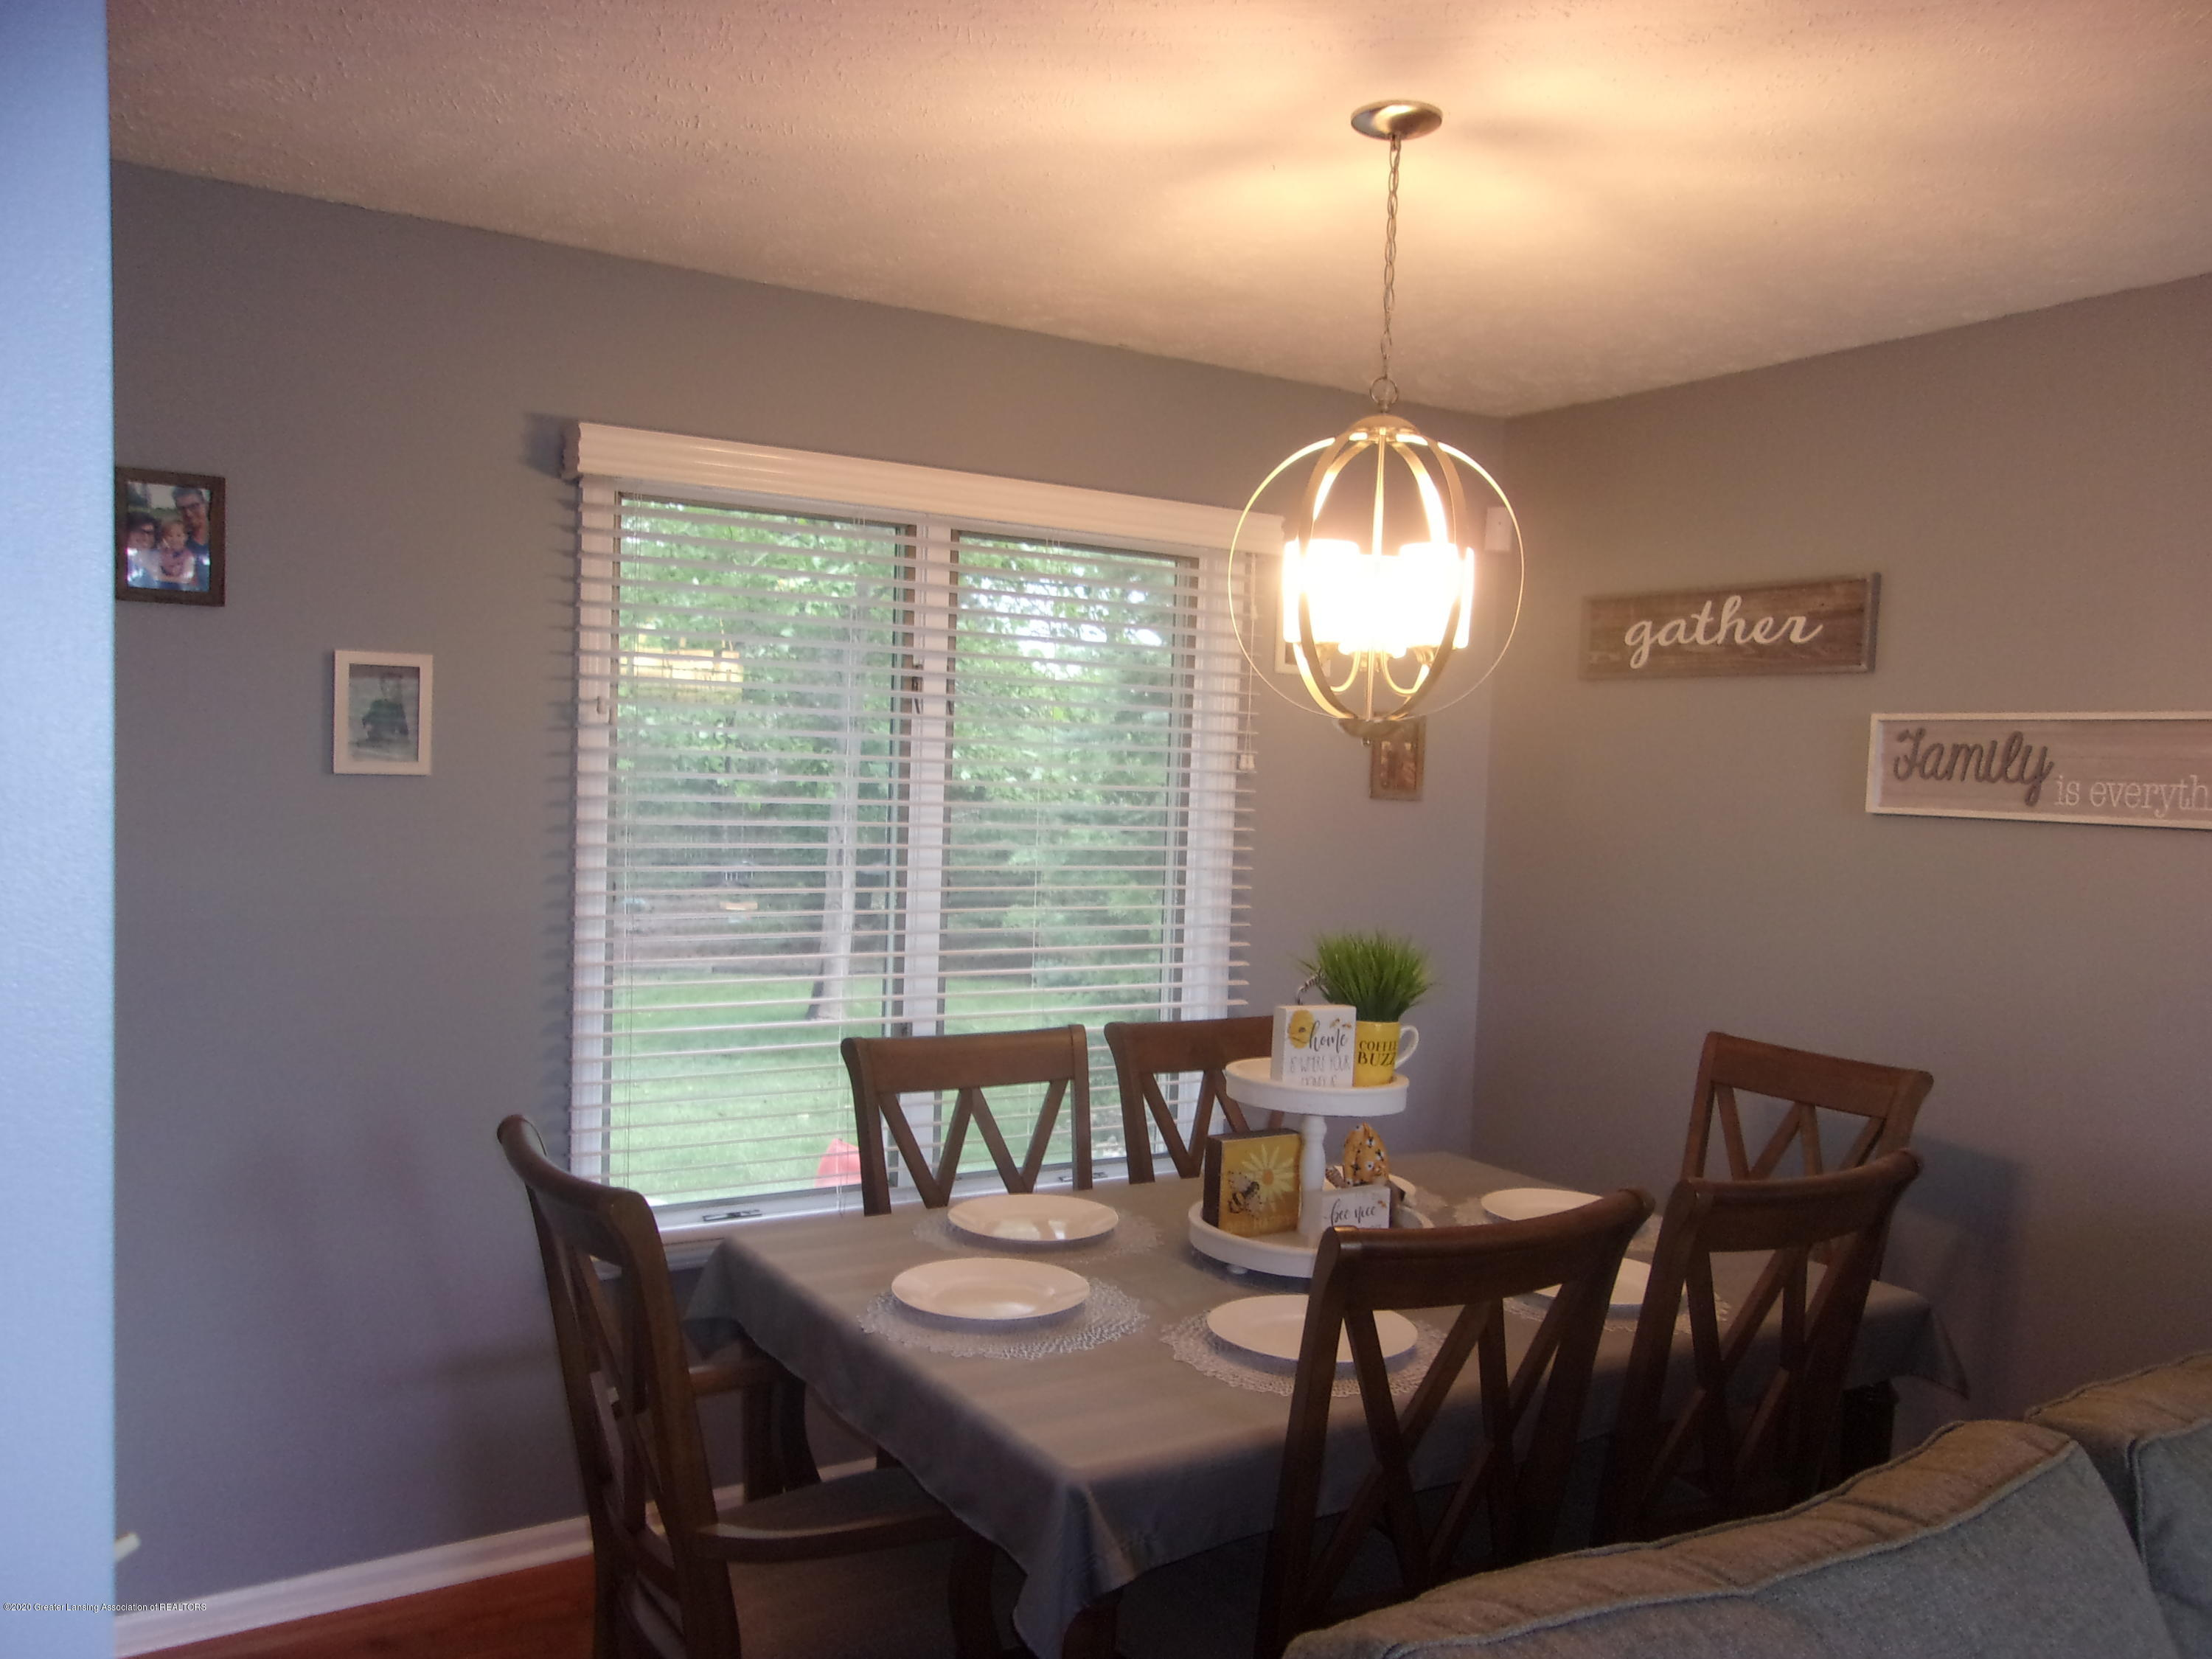 3991 Windy Heights Dr - 100_0986 - 19